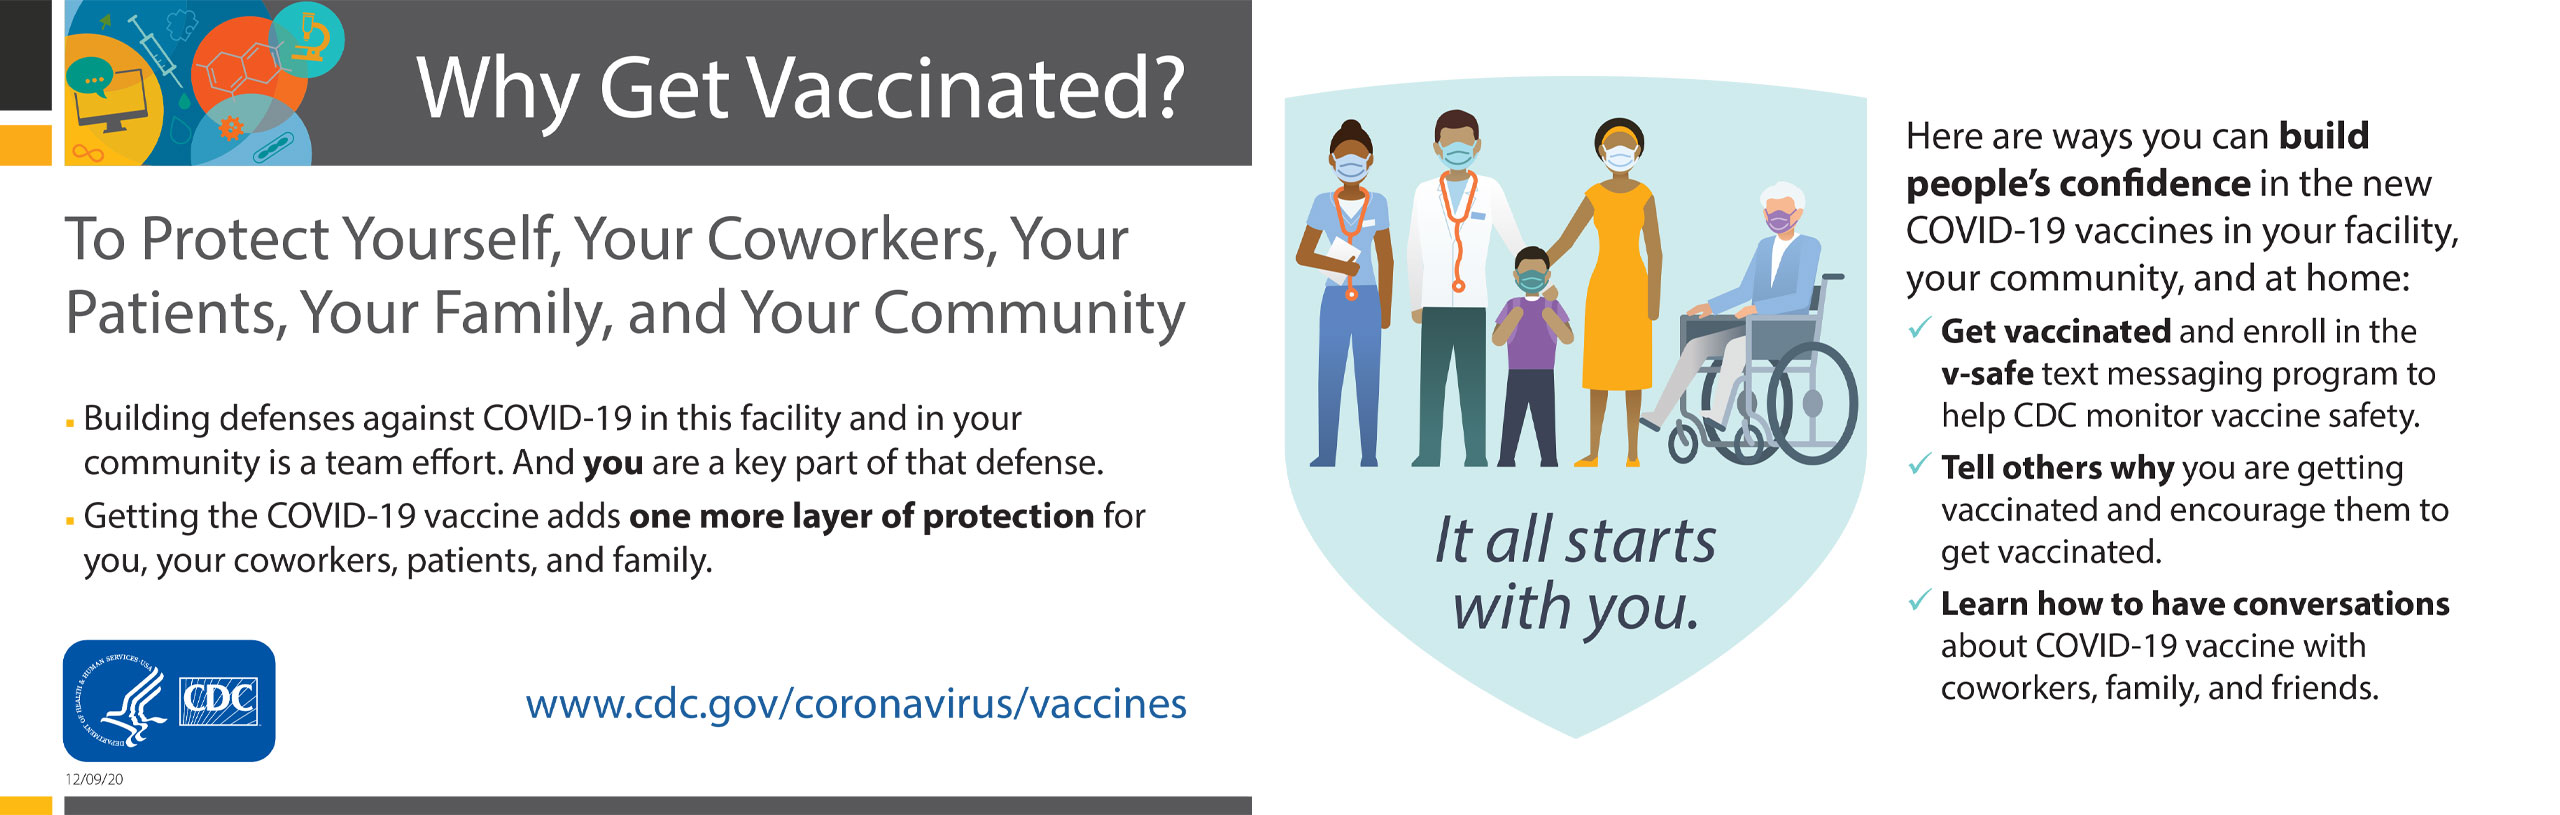 To protect yourself, your coworkers, your patients, your family, and your community. Building defenses against covid-19 in this facility and in your community is a team effort. and you are a key part of that defense. Getting the covid-19 vaccine adds one more layer of protection for you, your coworkers, patients, and family.